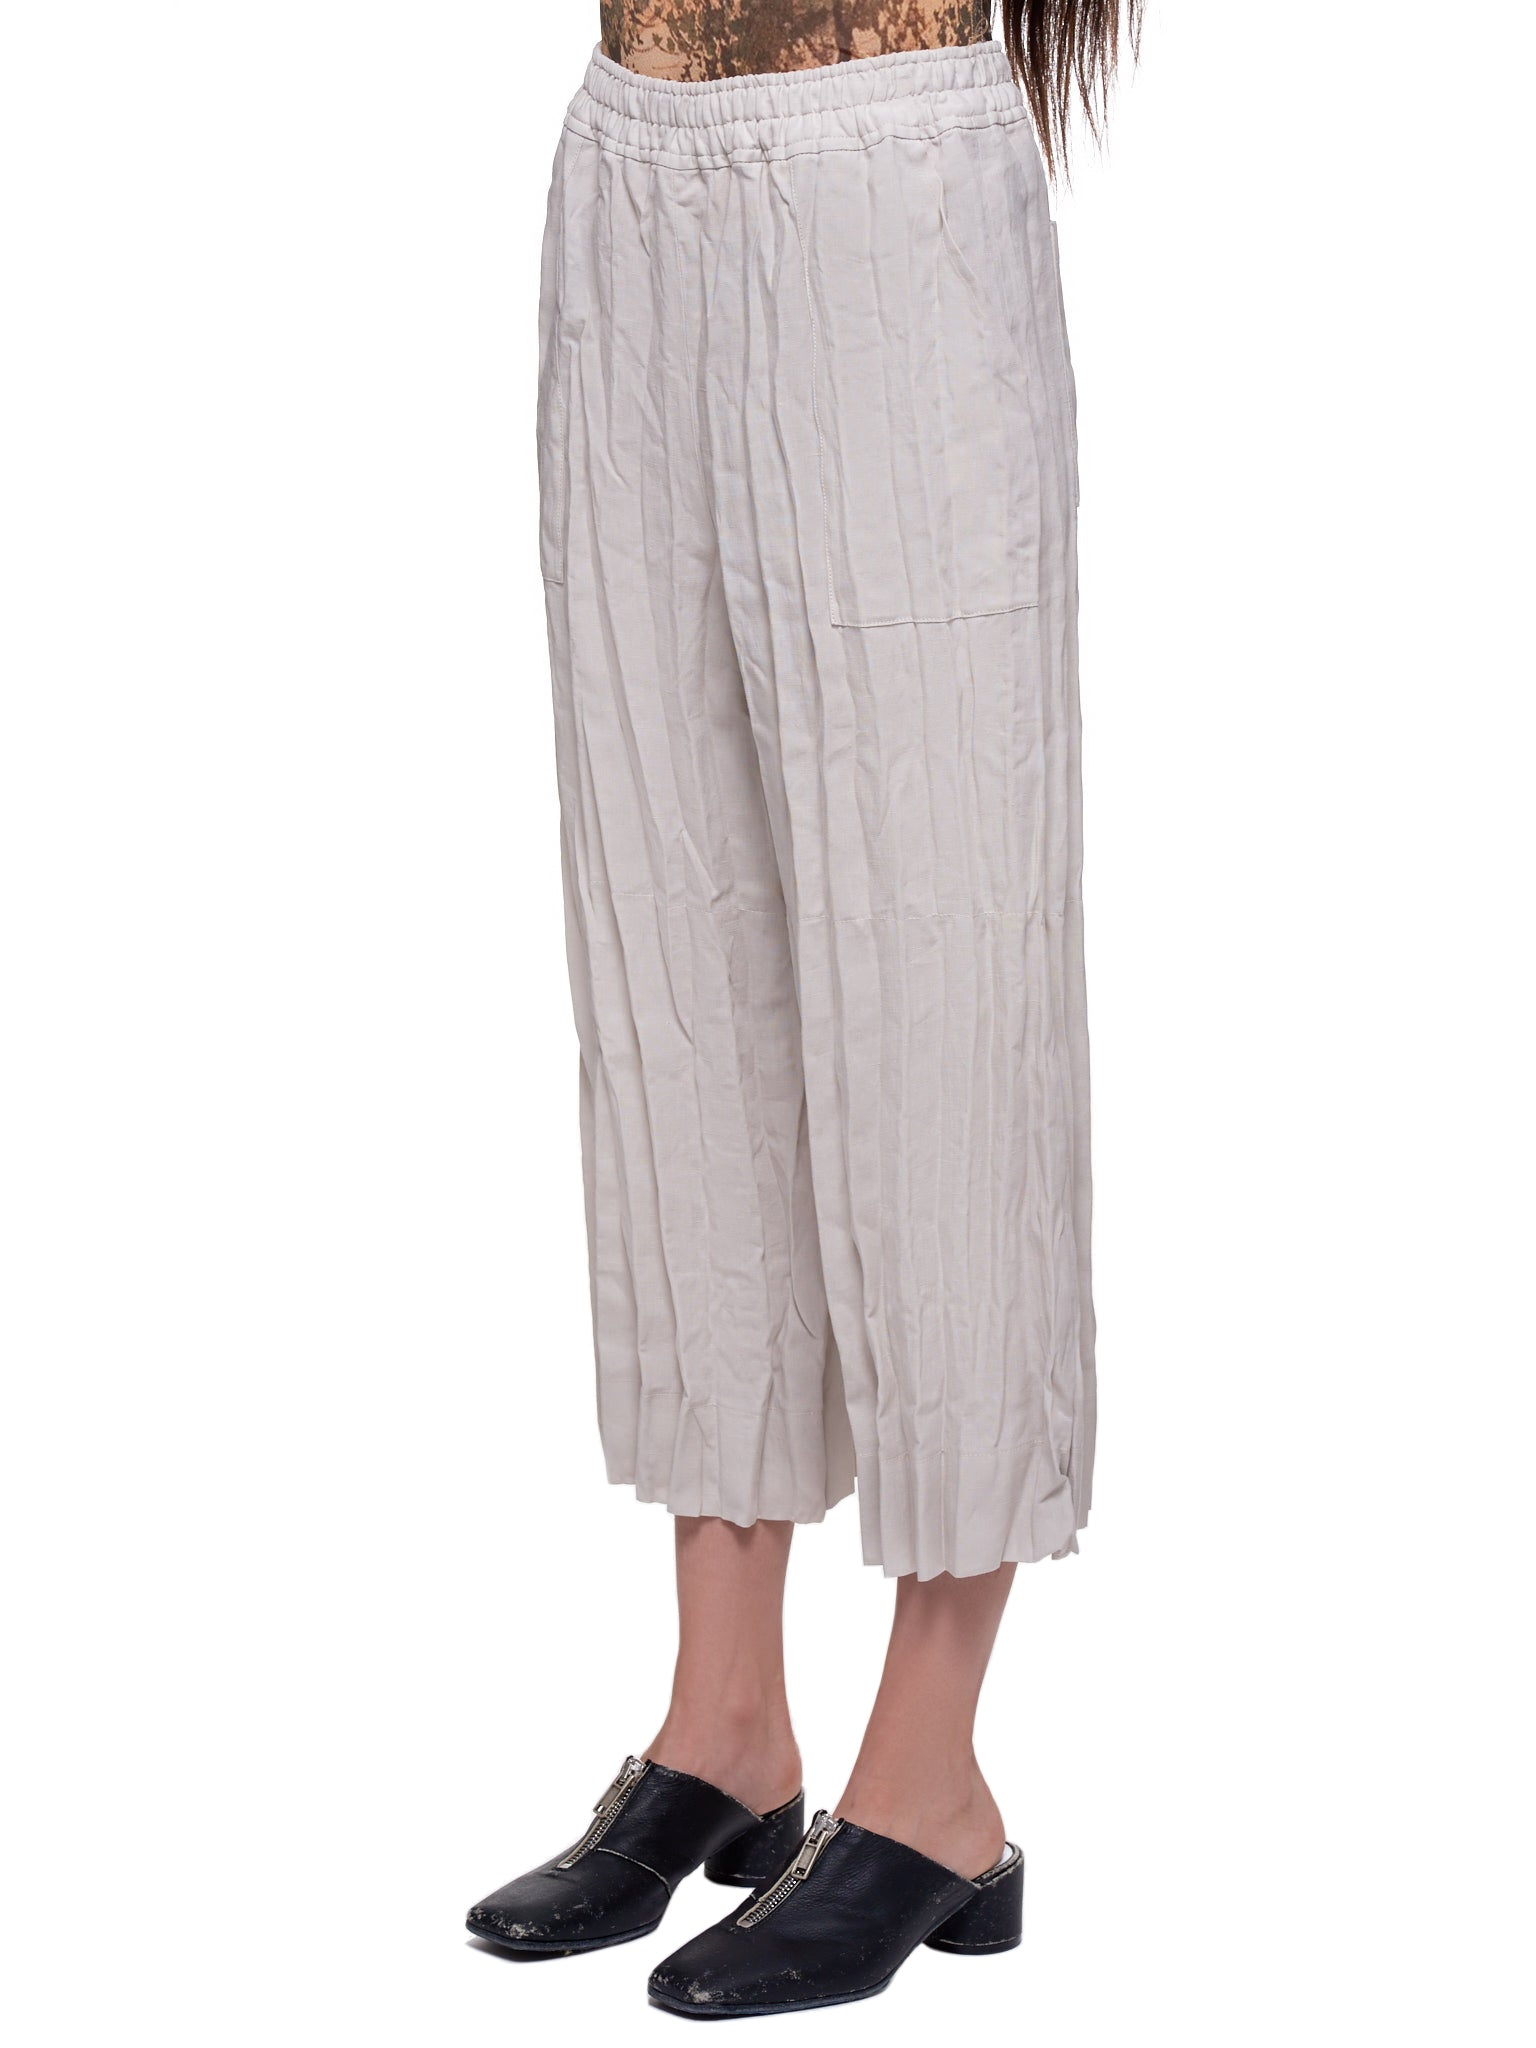 Cropped Wrinkled Trousers (TROU000318-WHITE-MELANGE)